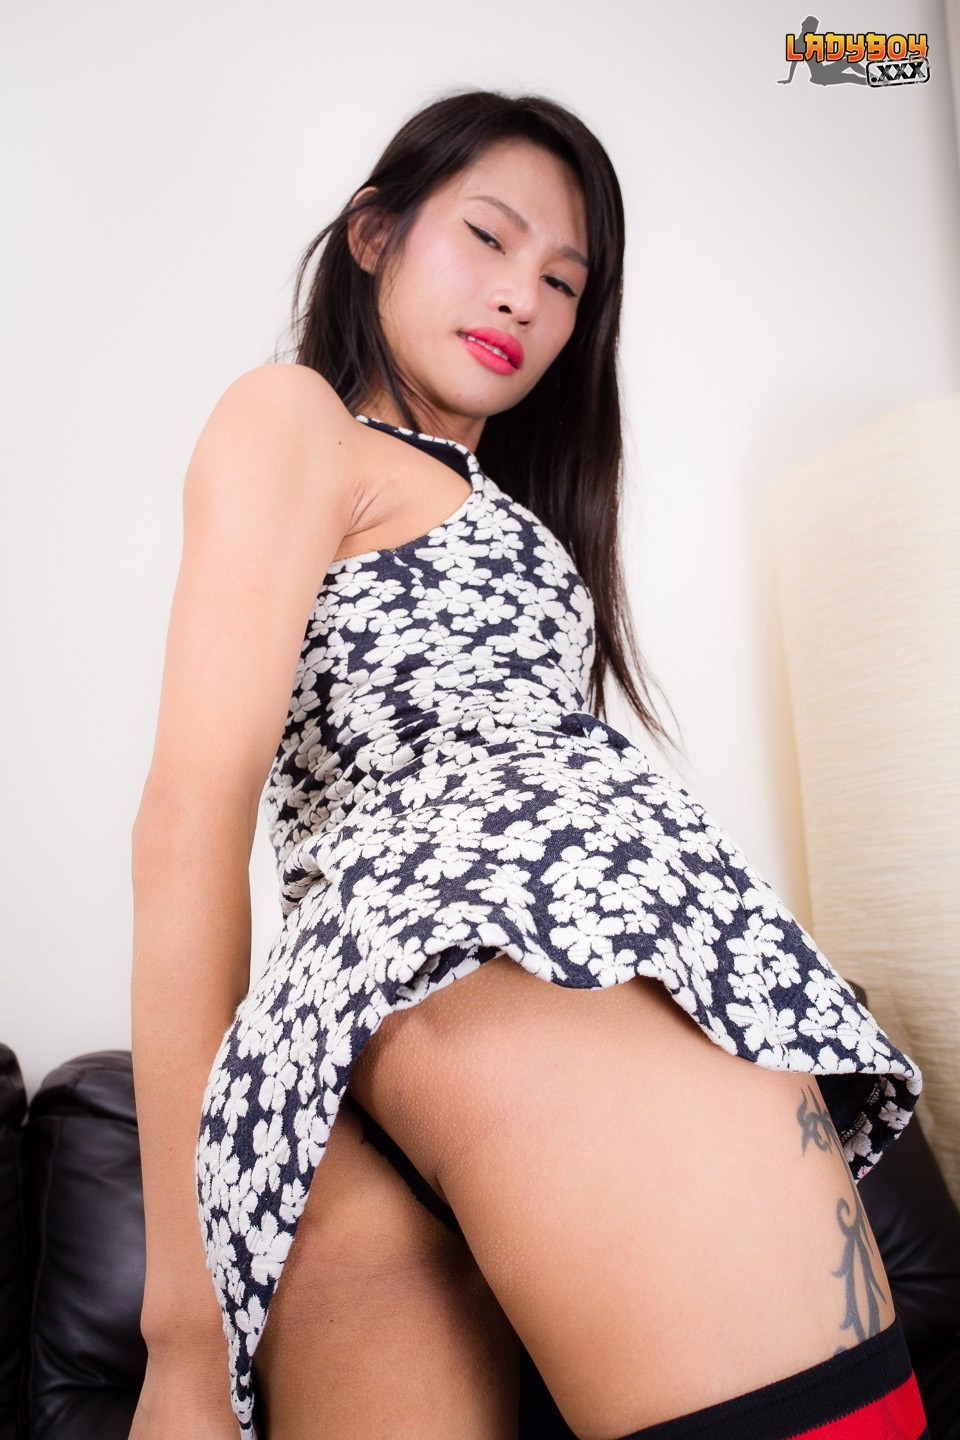 Sai Is A Nasty And Fun Girl With A Beautiful Skinny Body, Massive Tits